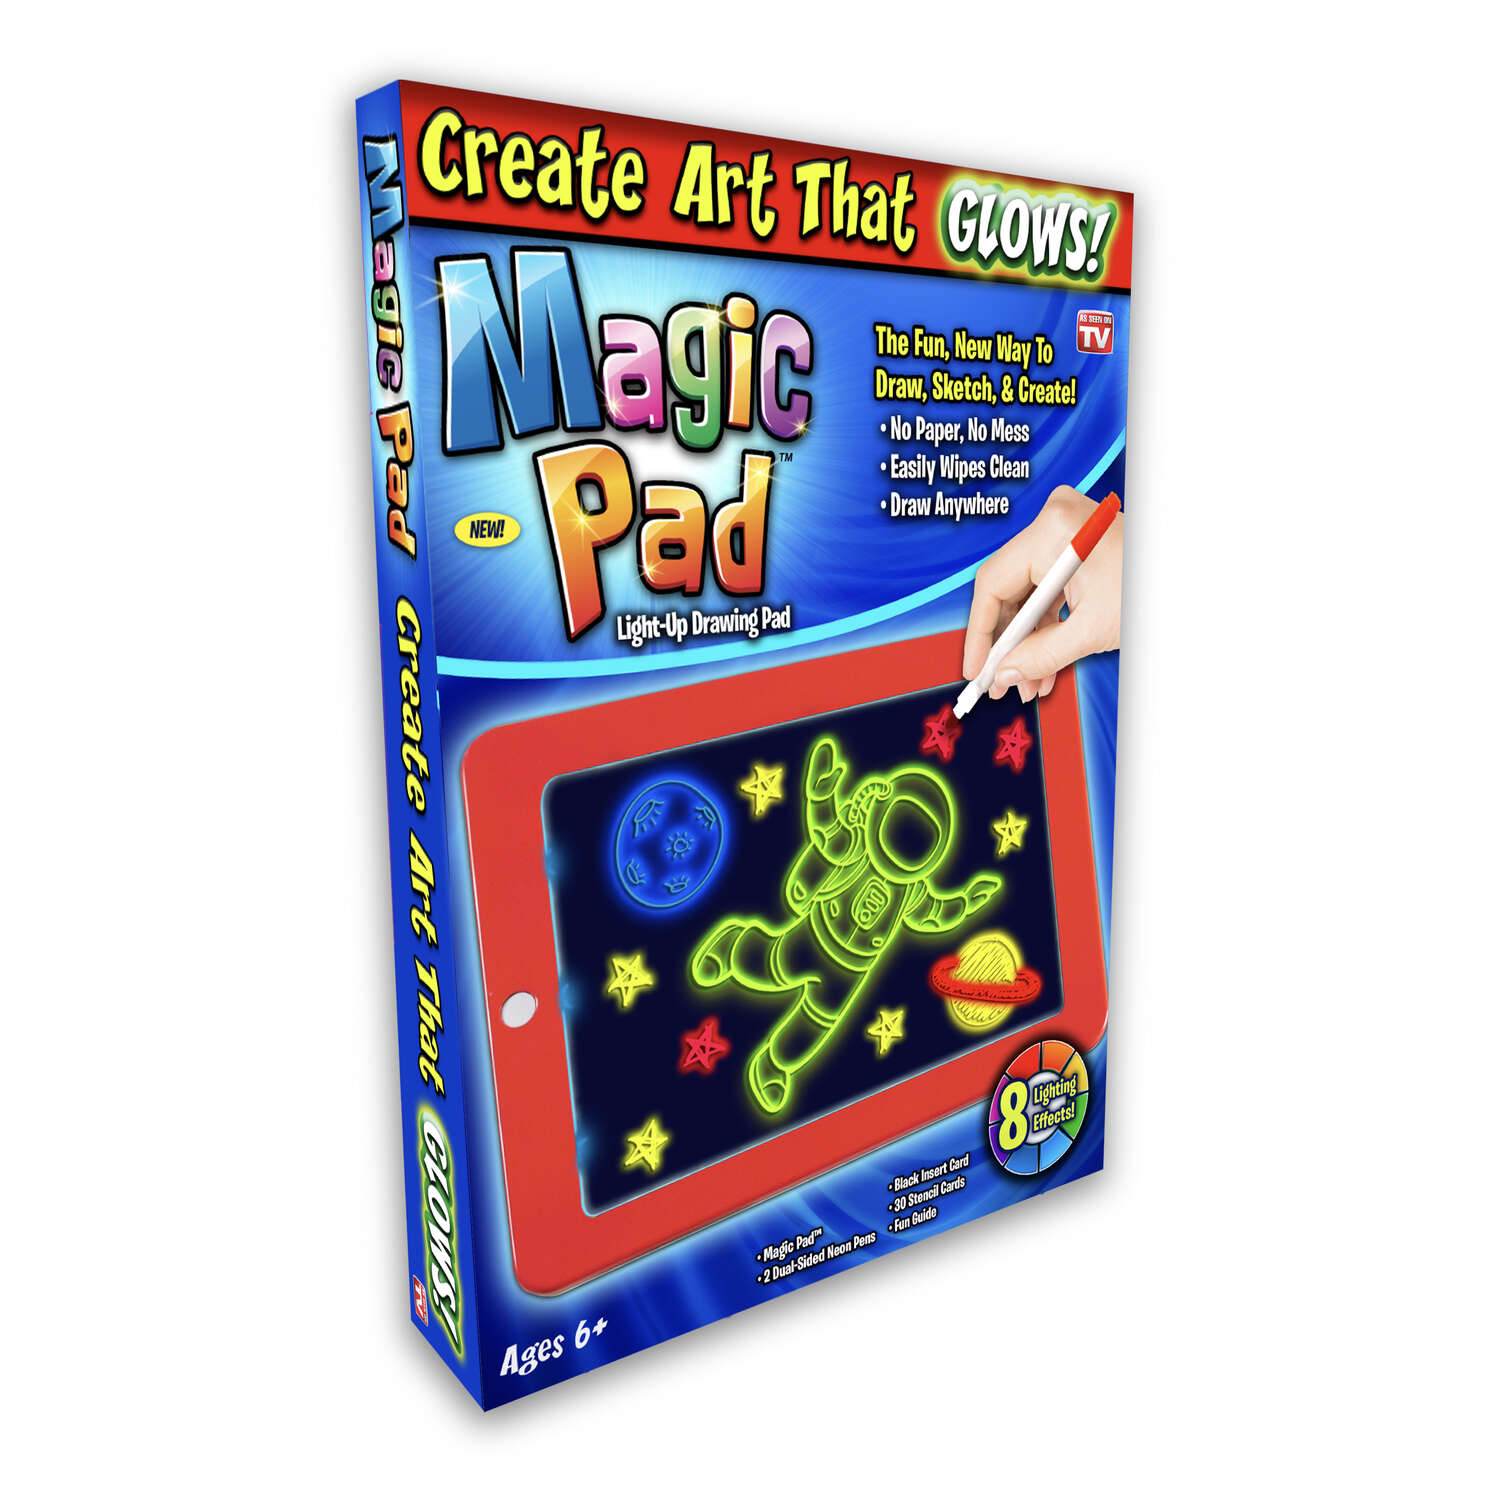 Magic Pad  As Seen On TV  Light-Up Drawing Pad  Plastic  Multi-Colored